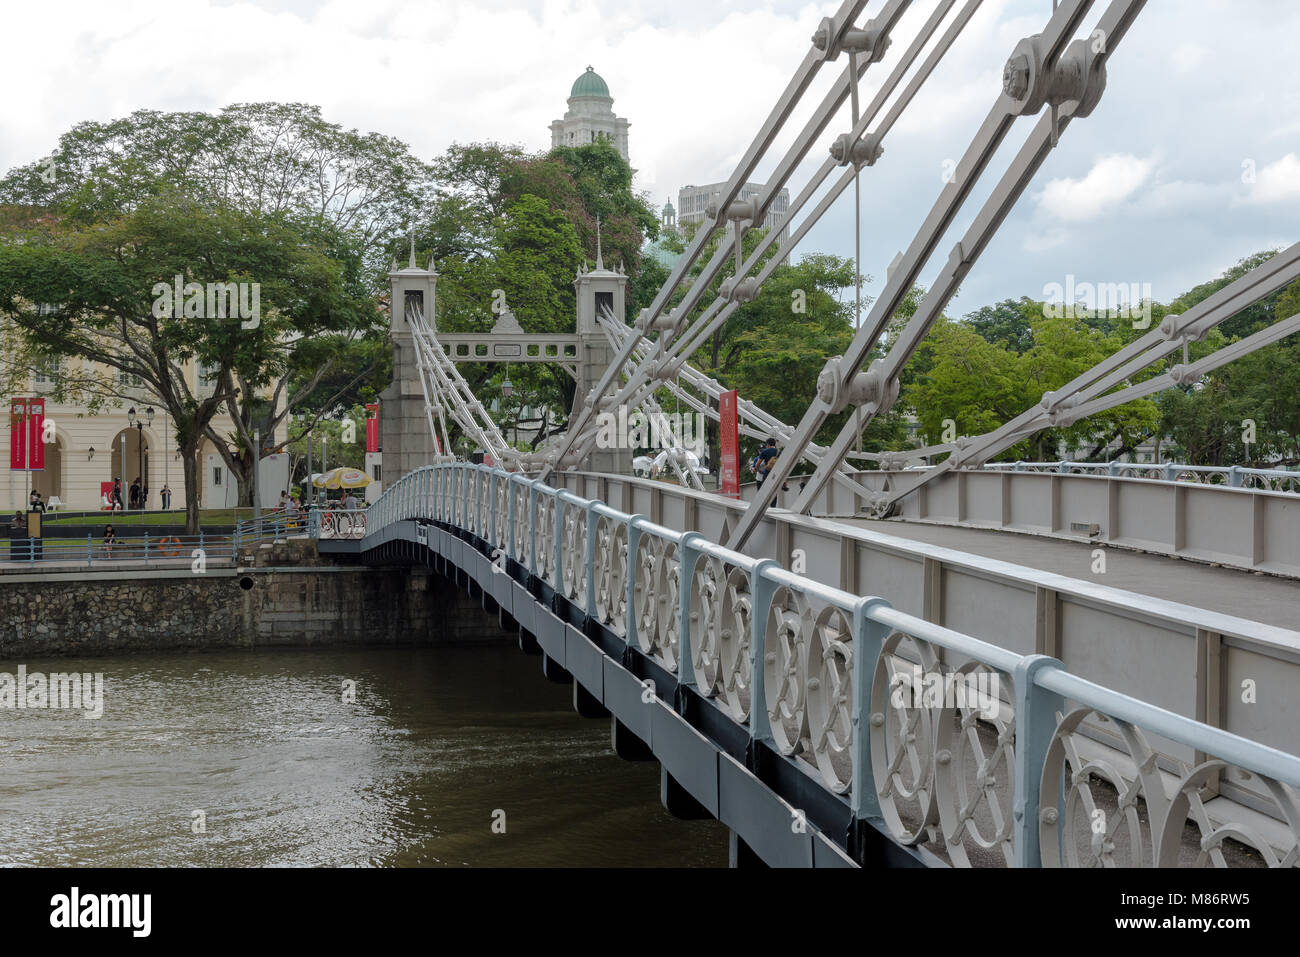 Cavenagh Bridge over Marina Bay and Singapore River in downtown Singapore - Stock Image